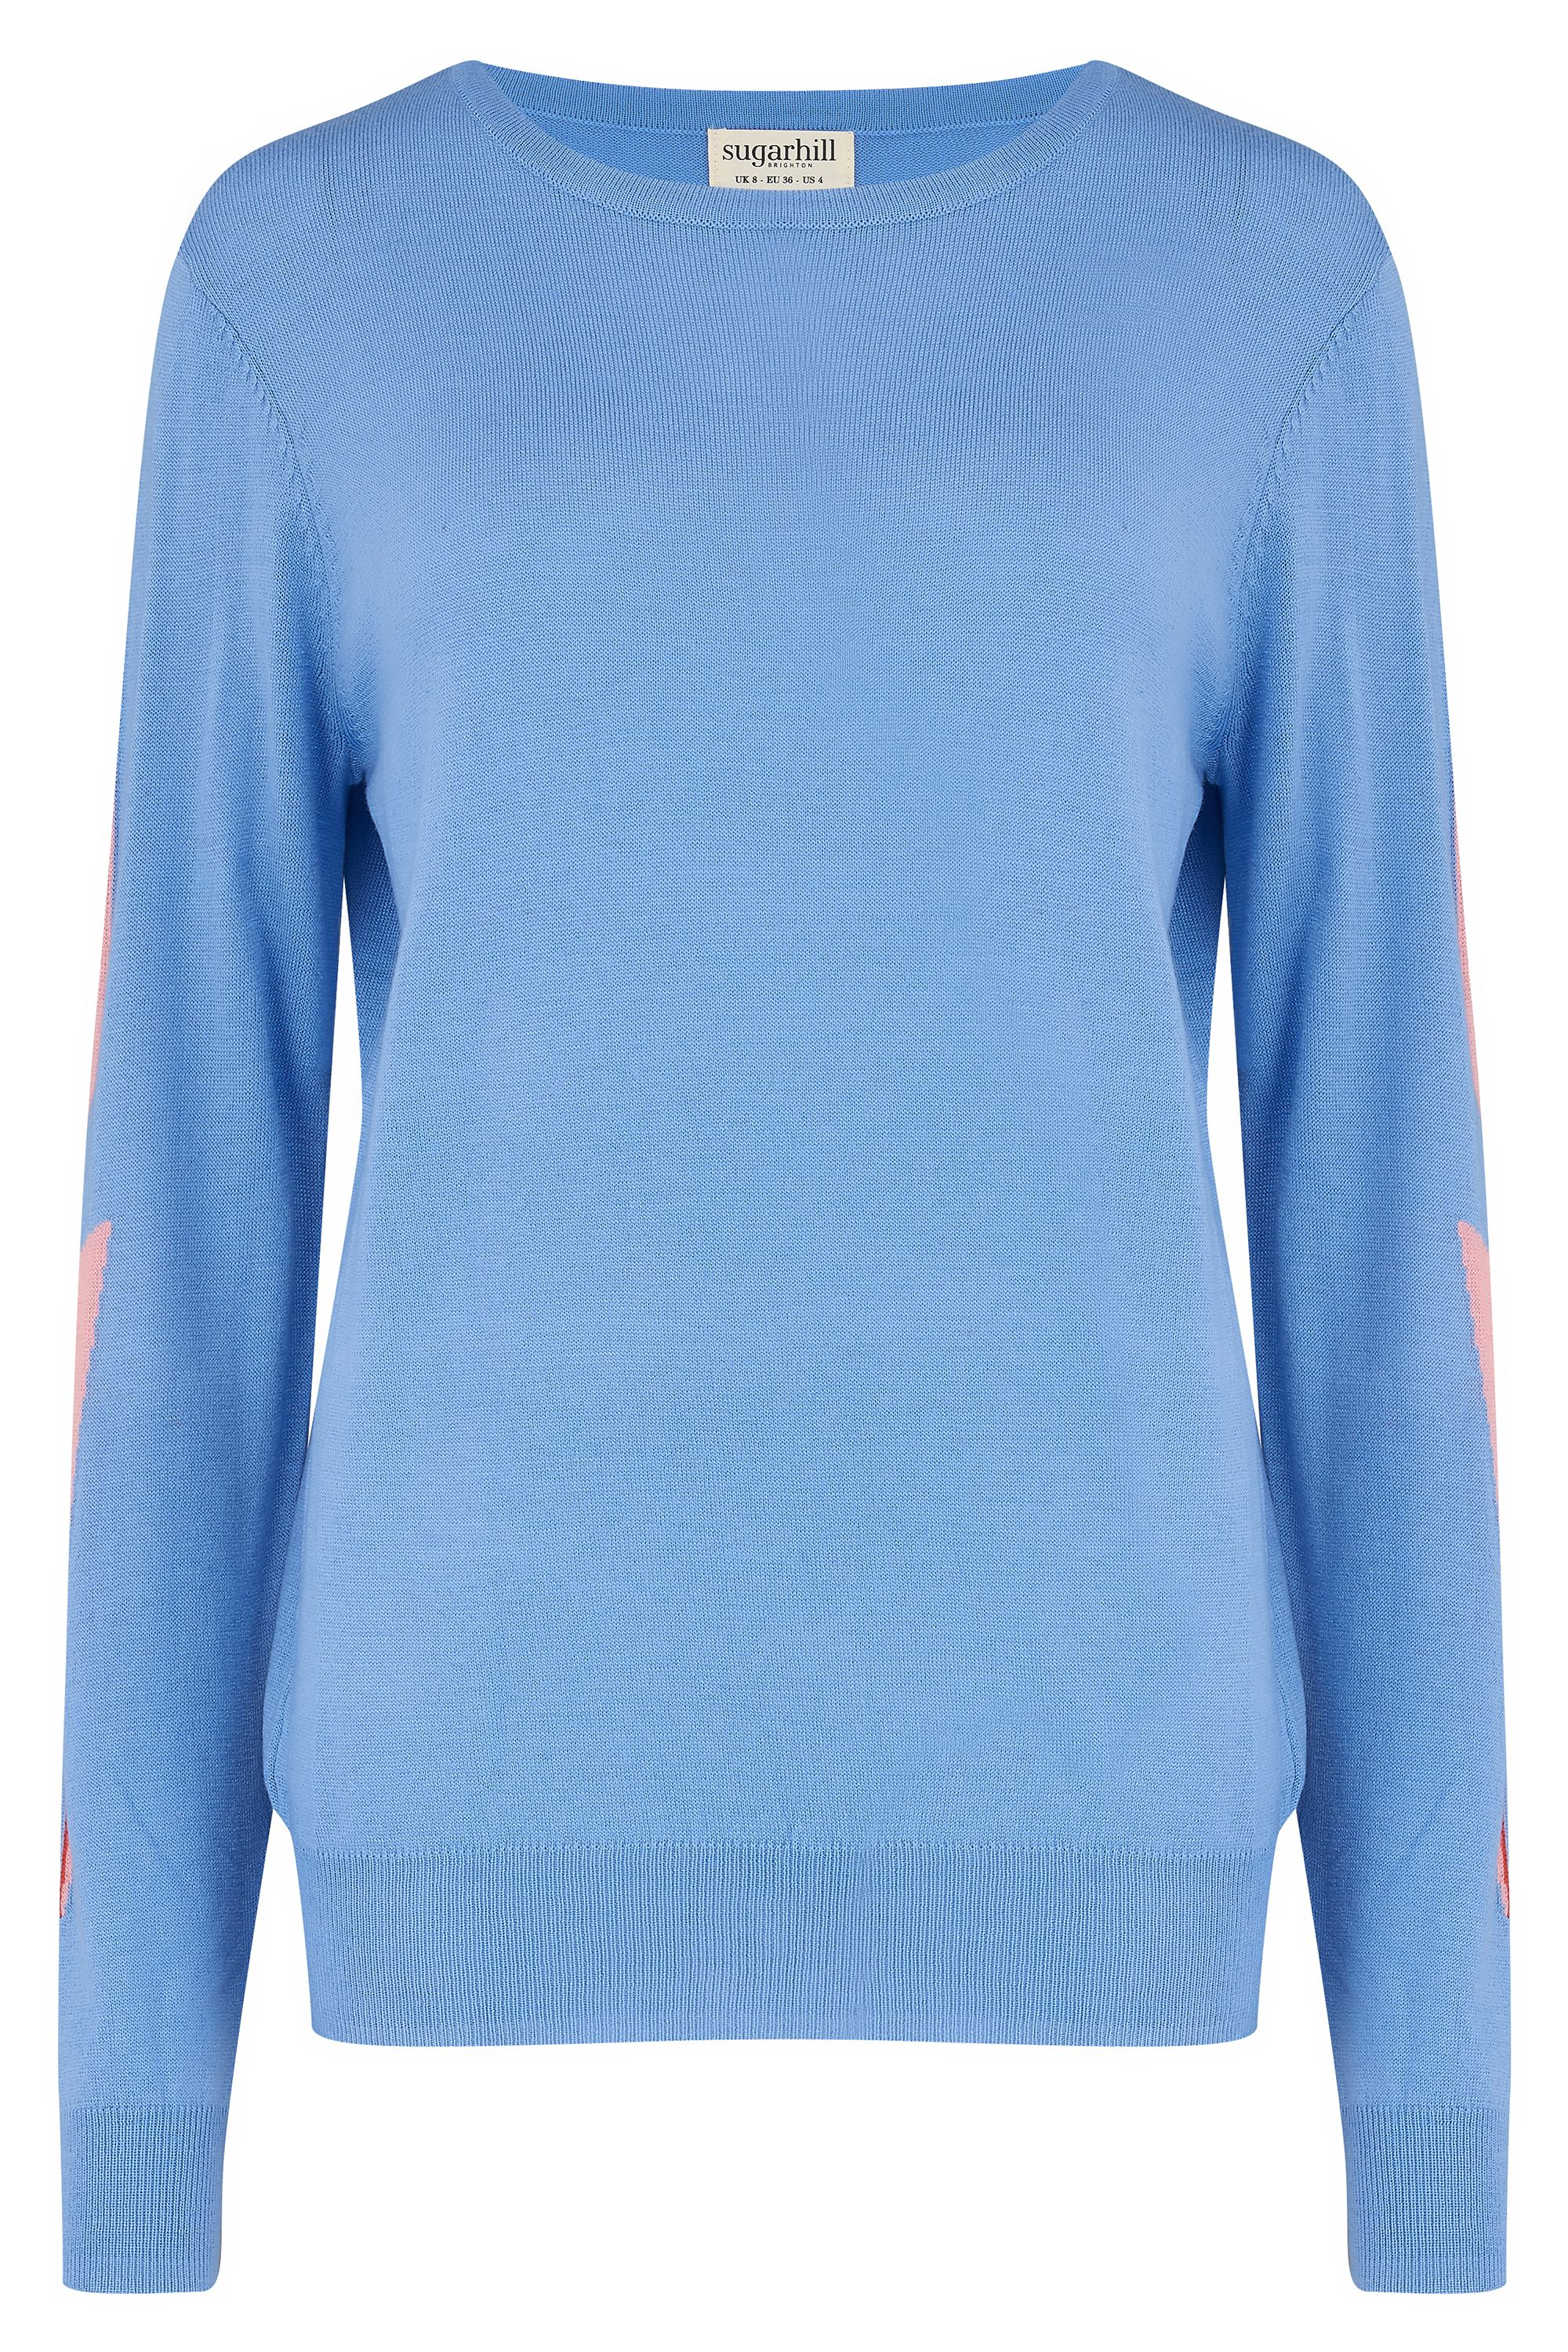 NEW Sugarhill Brighton Velma Sweater - Lightning Sleeve Blue